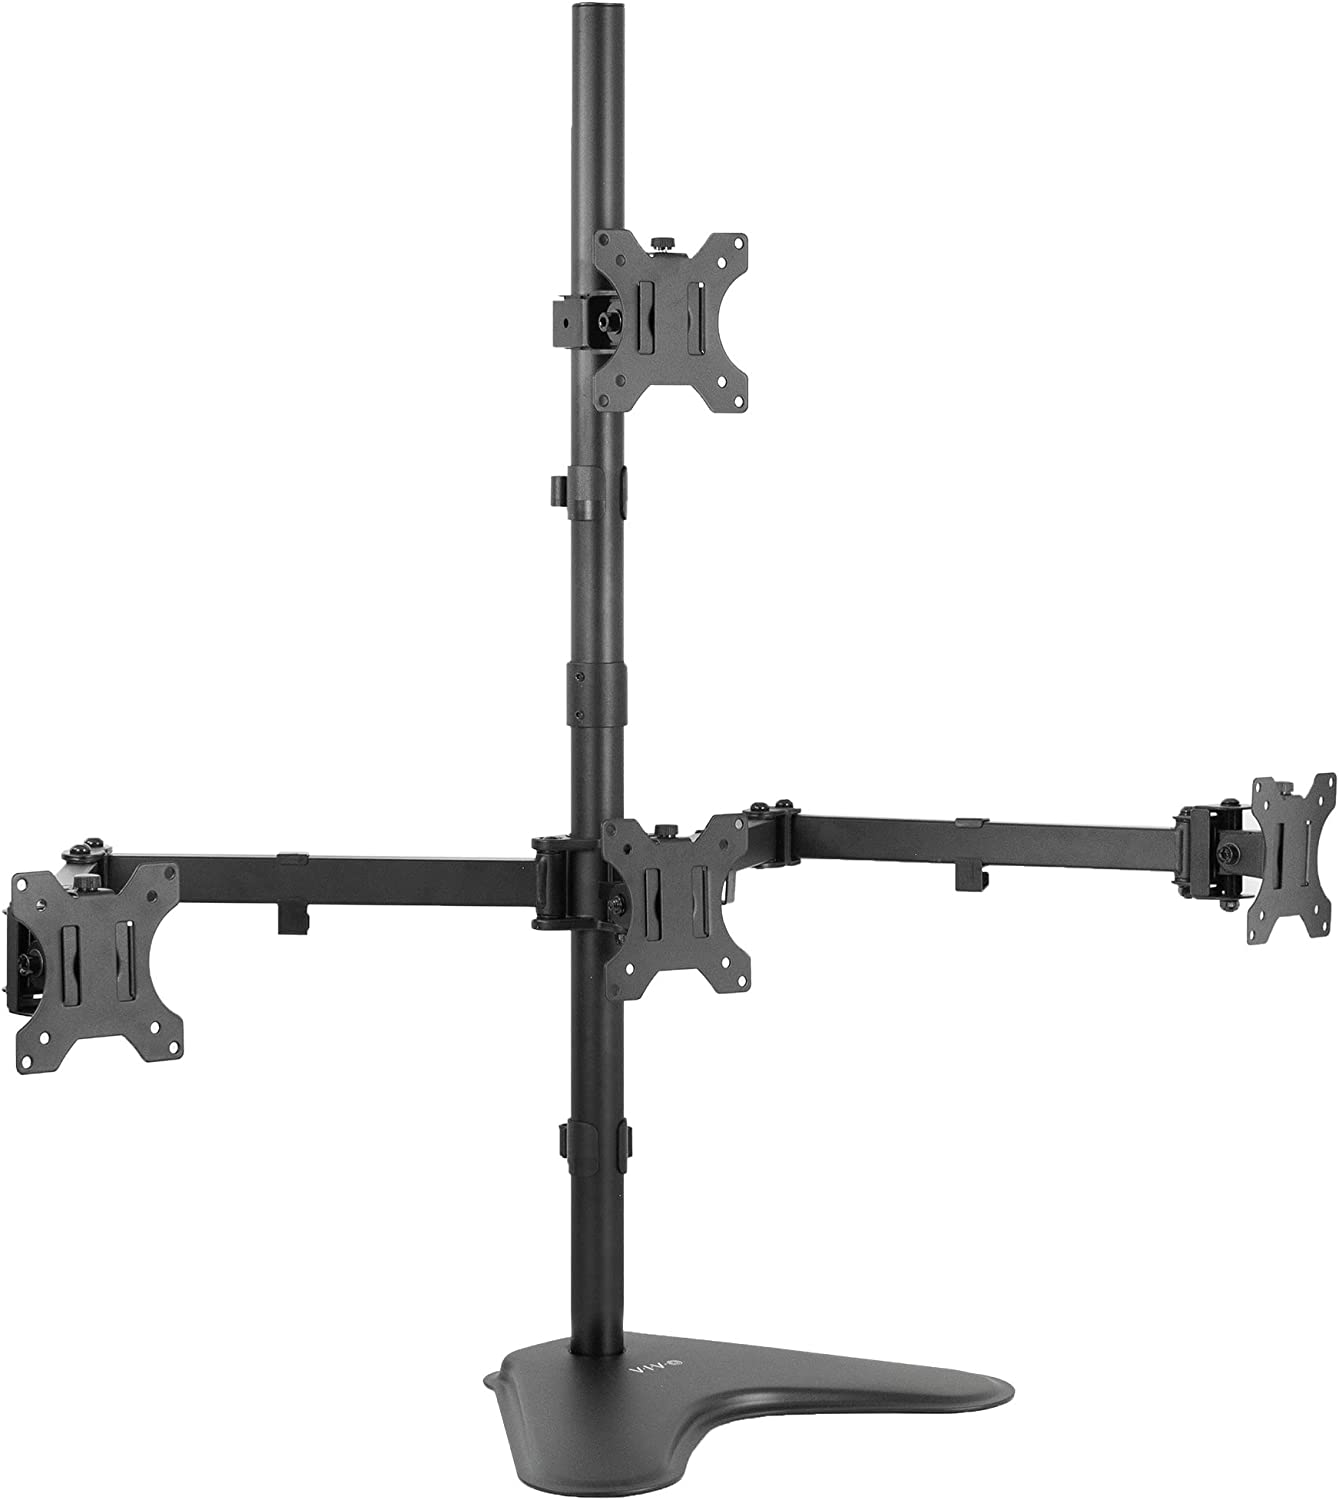 VIVO Quad 13 to 24 inch LCD Monitor Mount, Freestanding Desk Stand, 3 Plus 1 Articulating Display, Holds 4 Screens, VESA up to 100x100mm, STAND-V104B